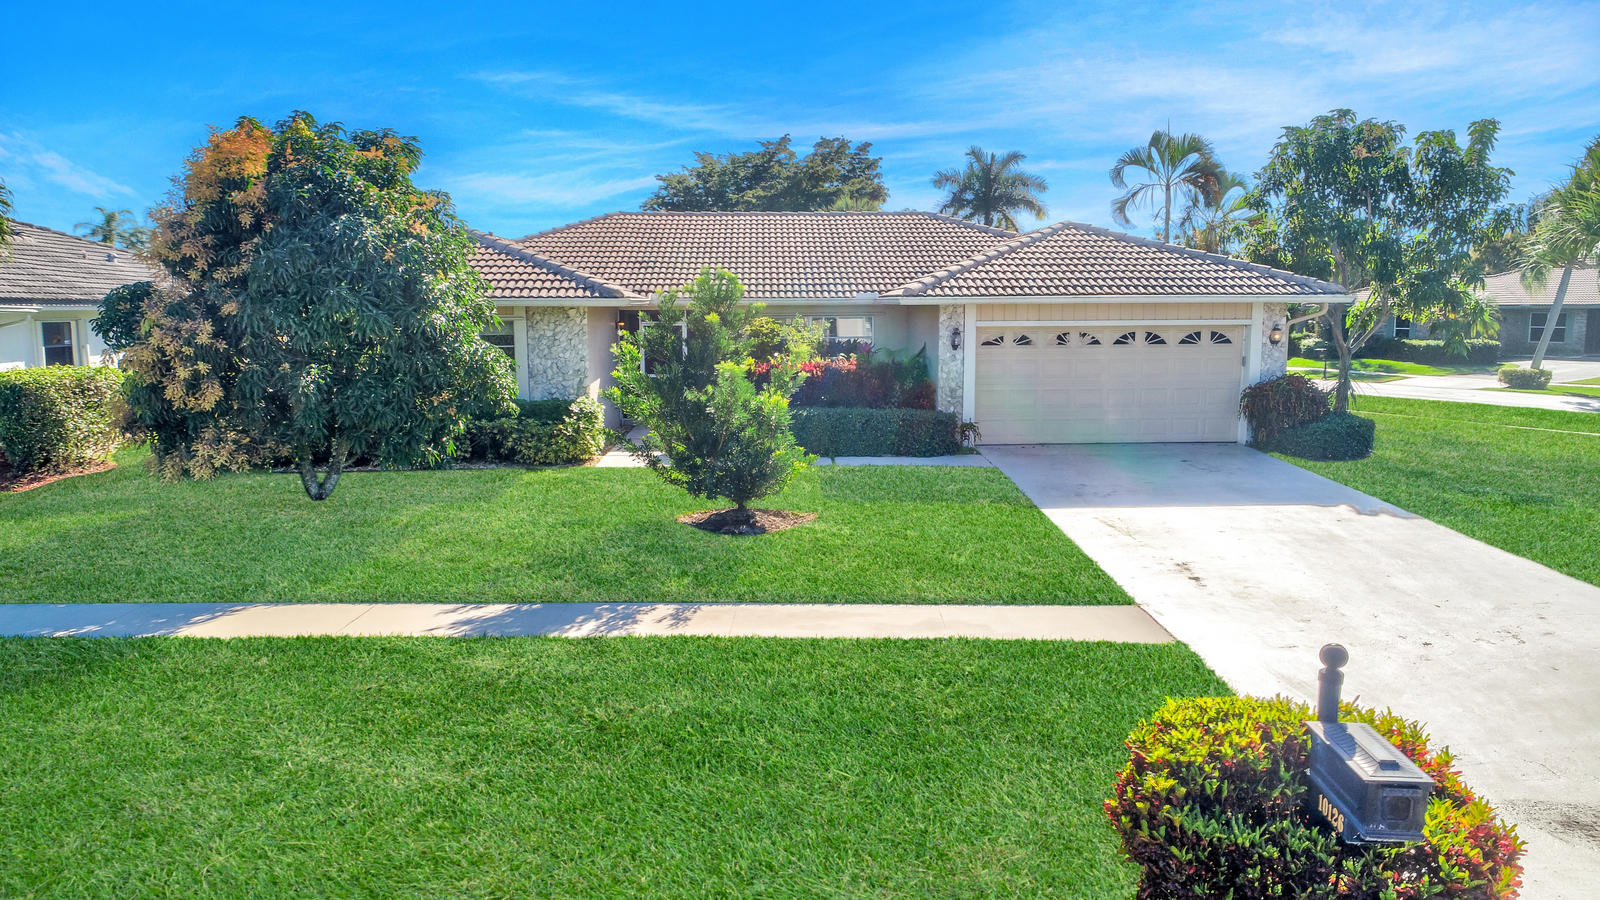 Home for sale in Boca Greens Country Club Boca Raton Florida